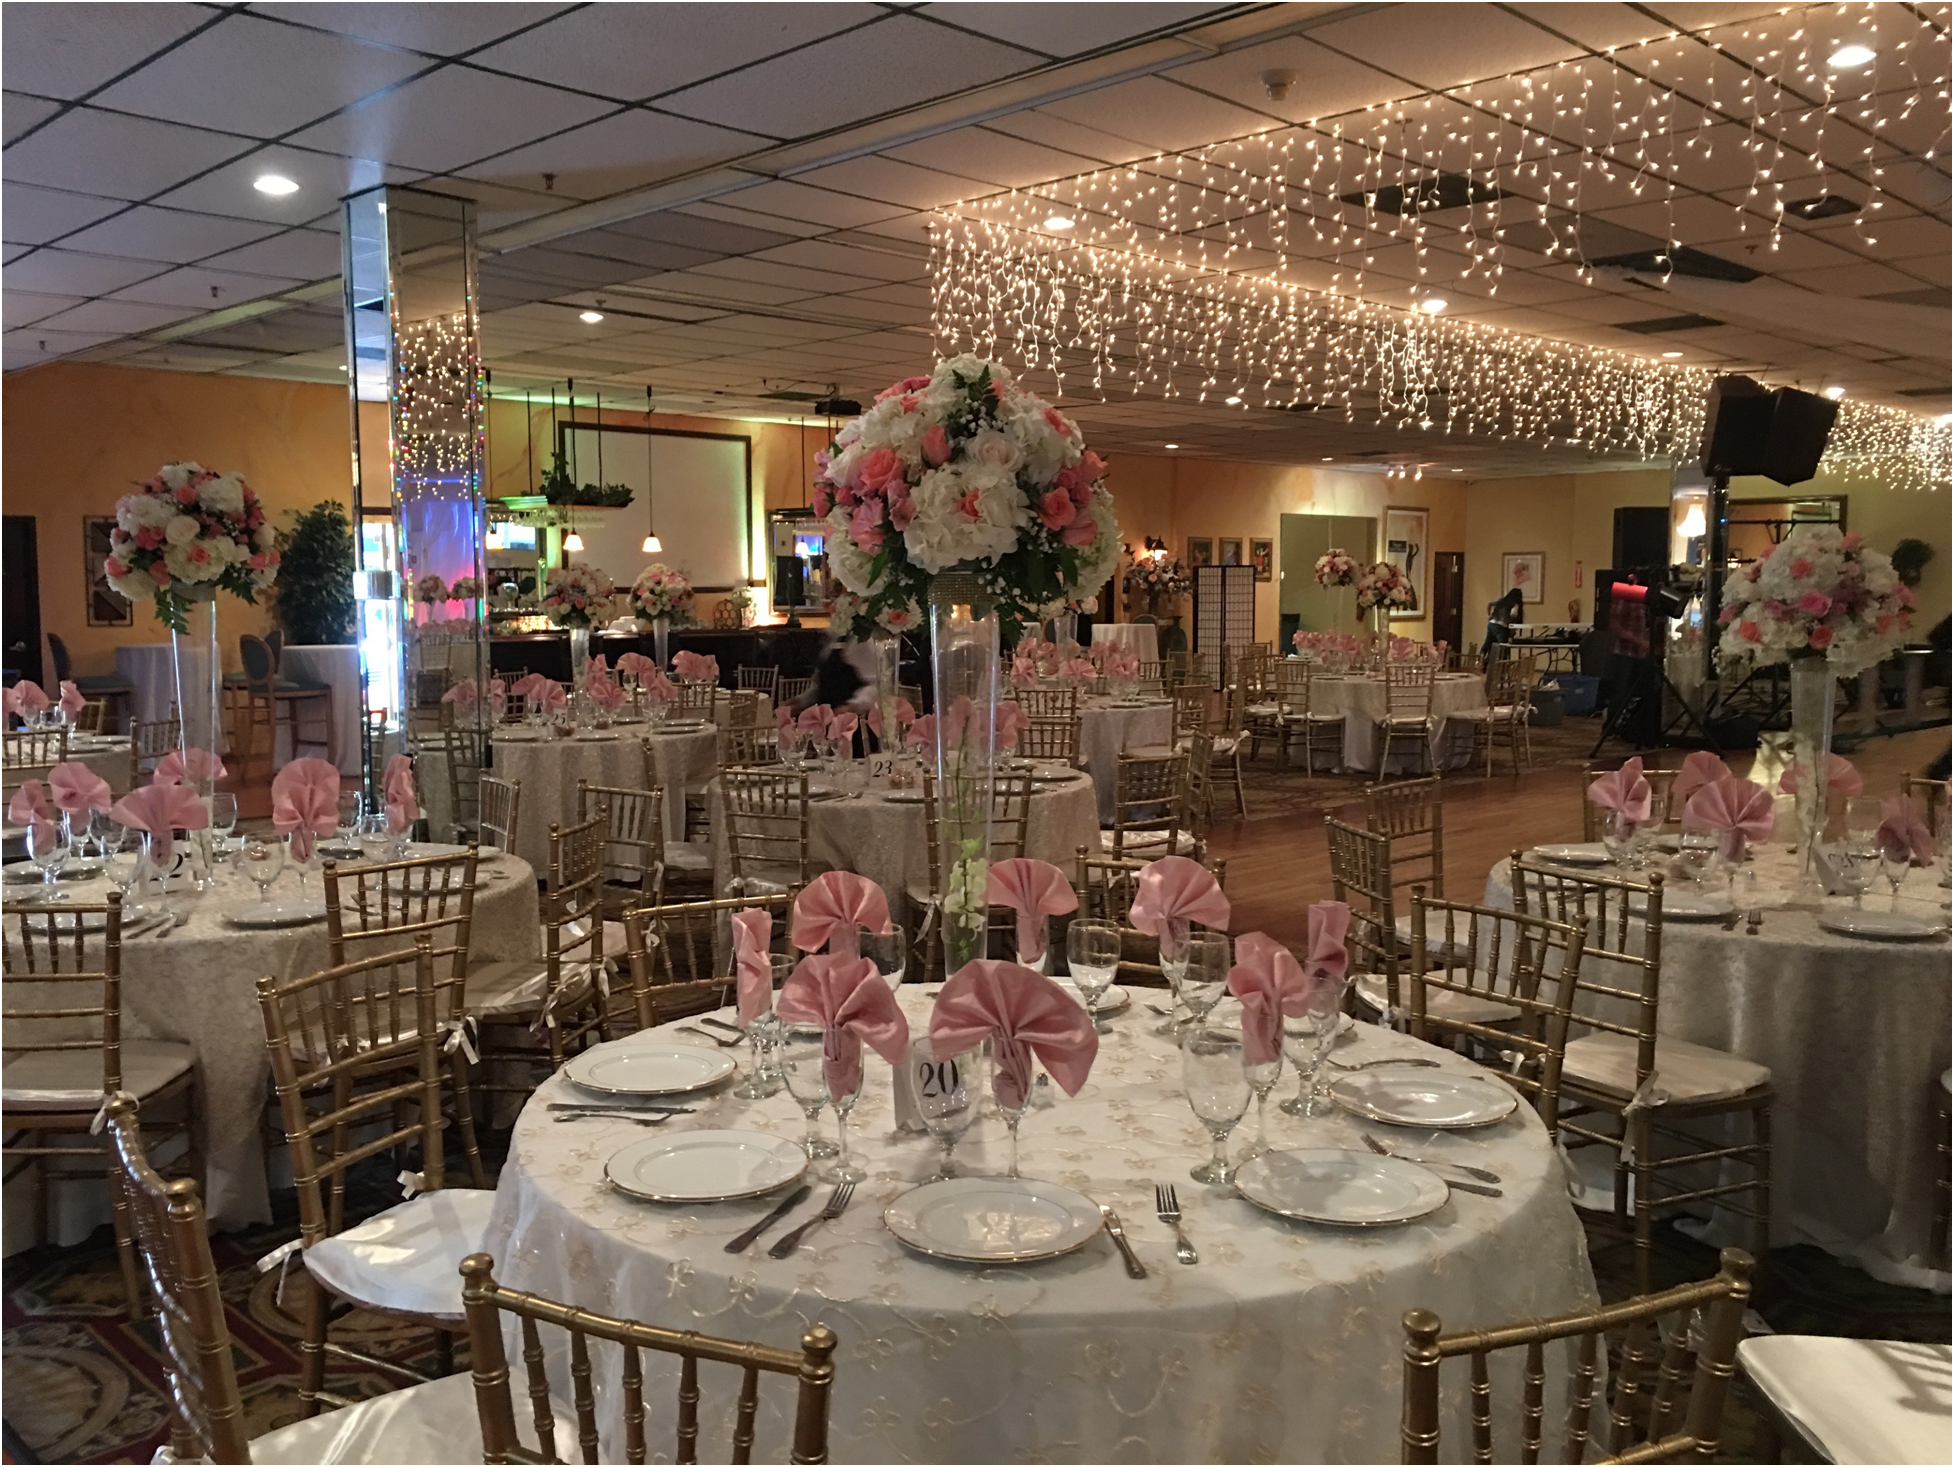 Rent Goldcoast Ballroom – A Magnificent Venue for Weddings, Private Parties & Other Events